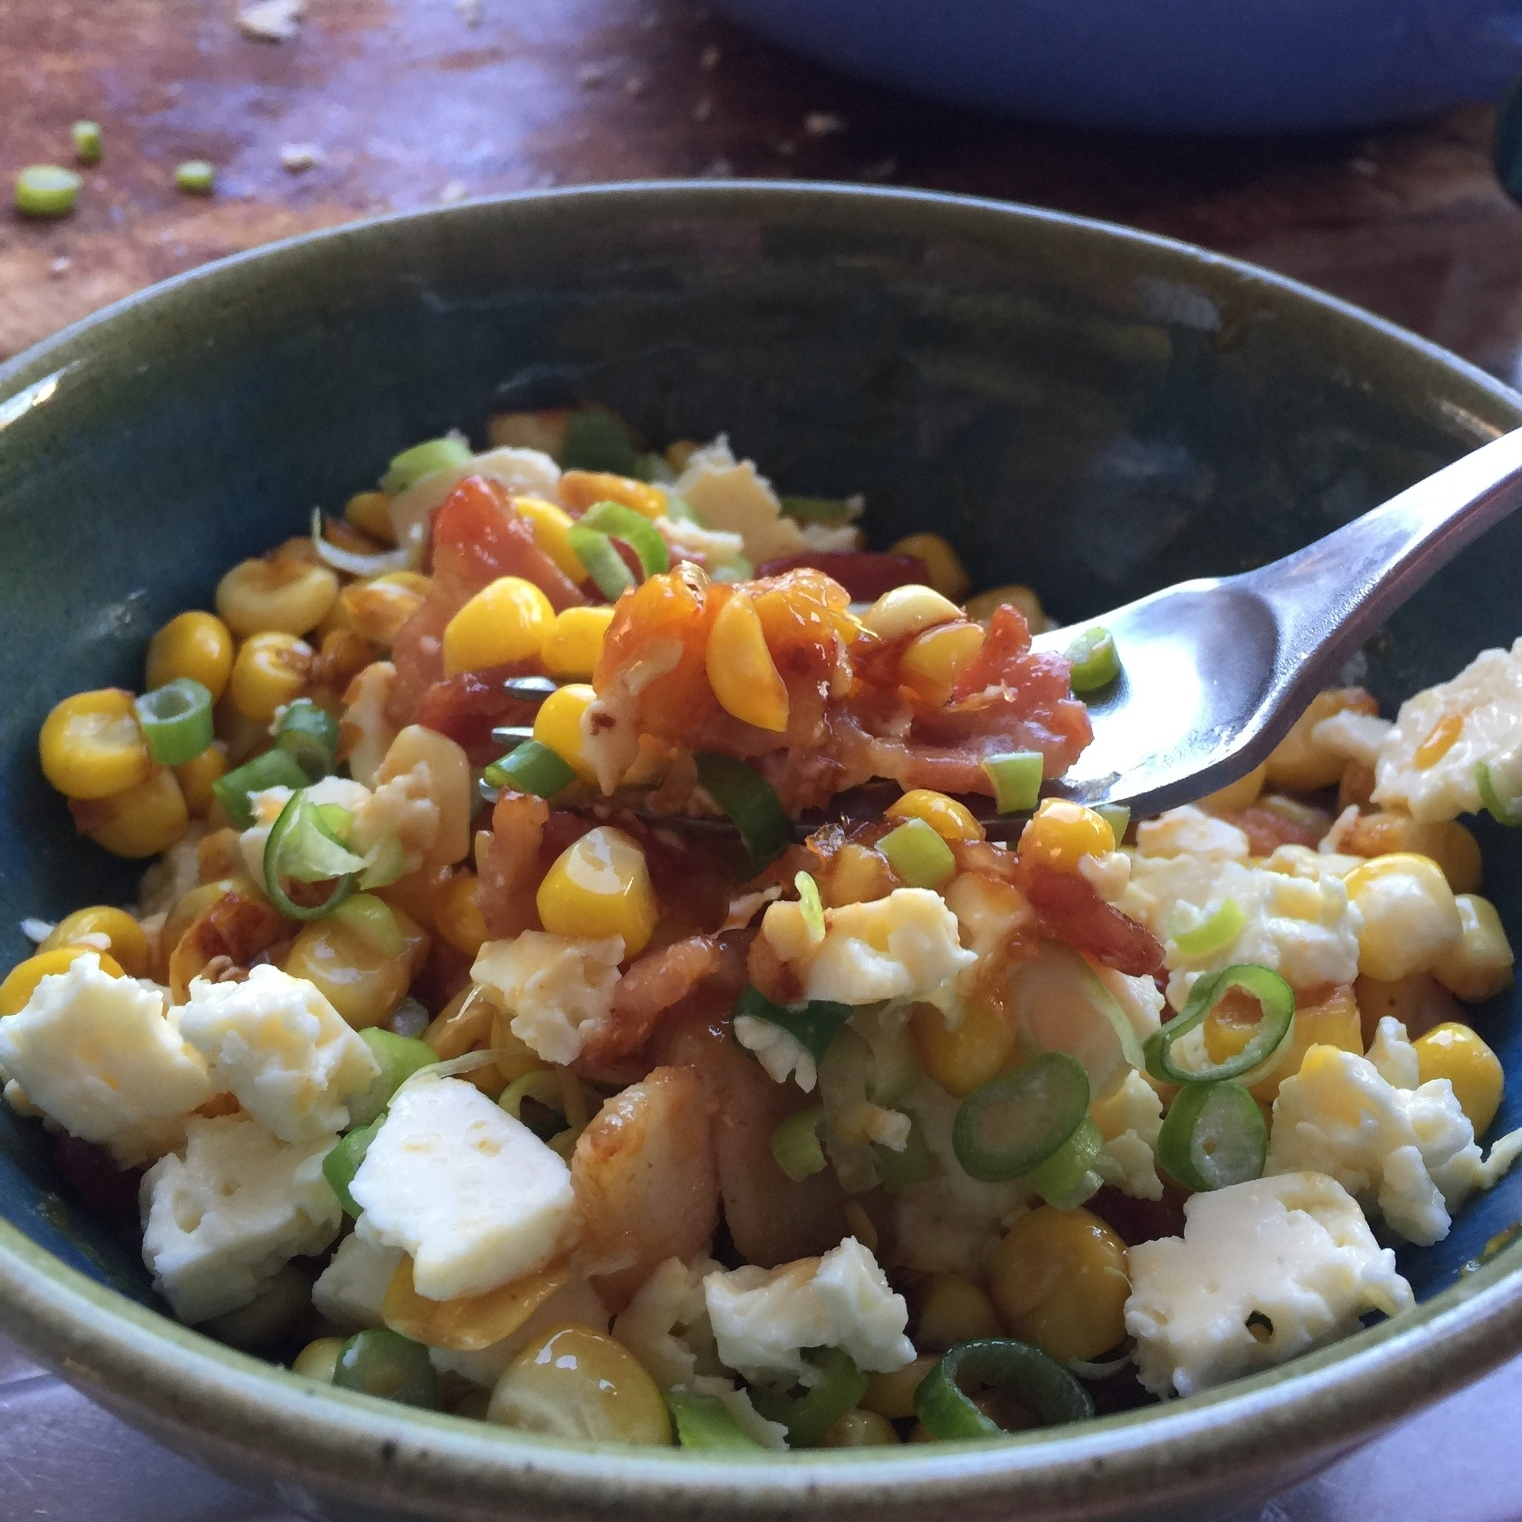 Sweetcorn, bacon and feta topped with buffalo sauce